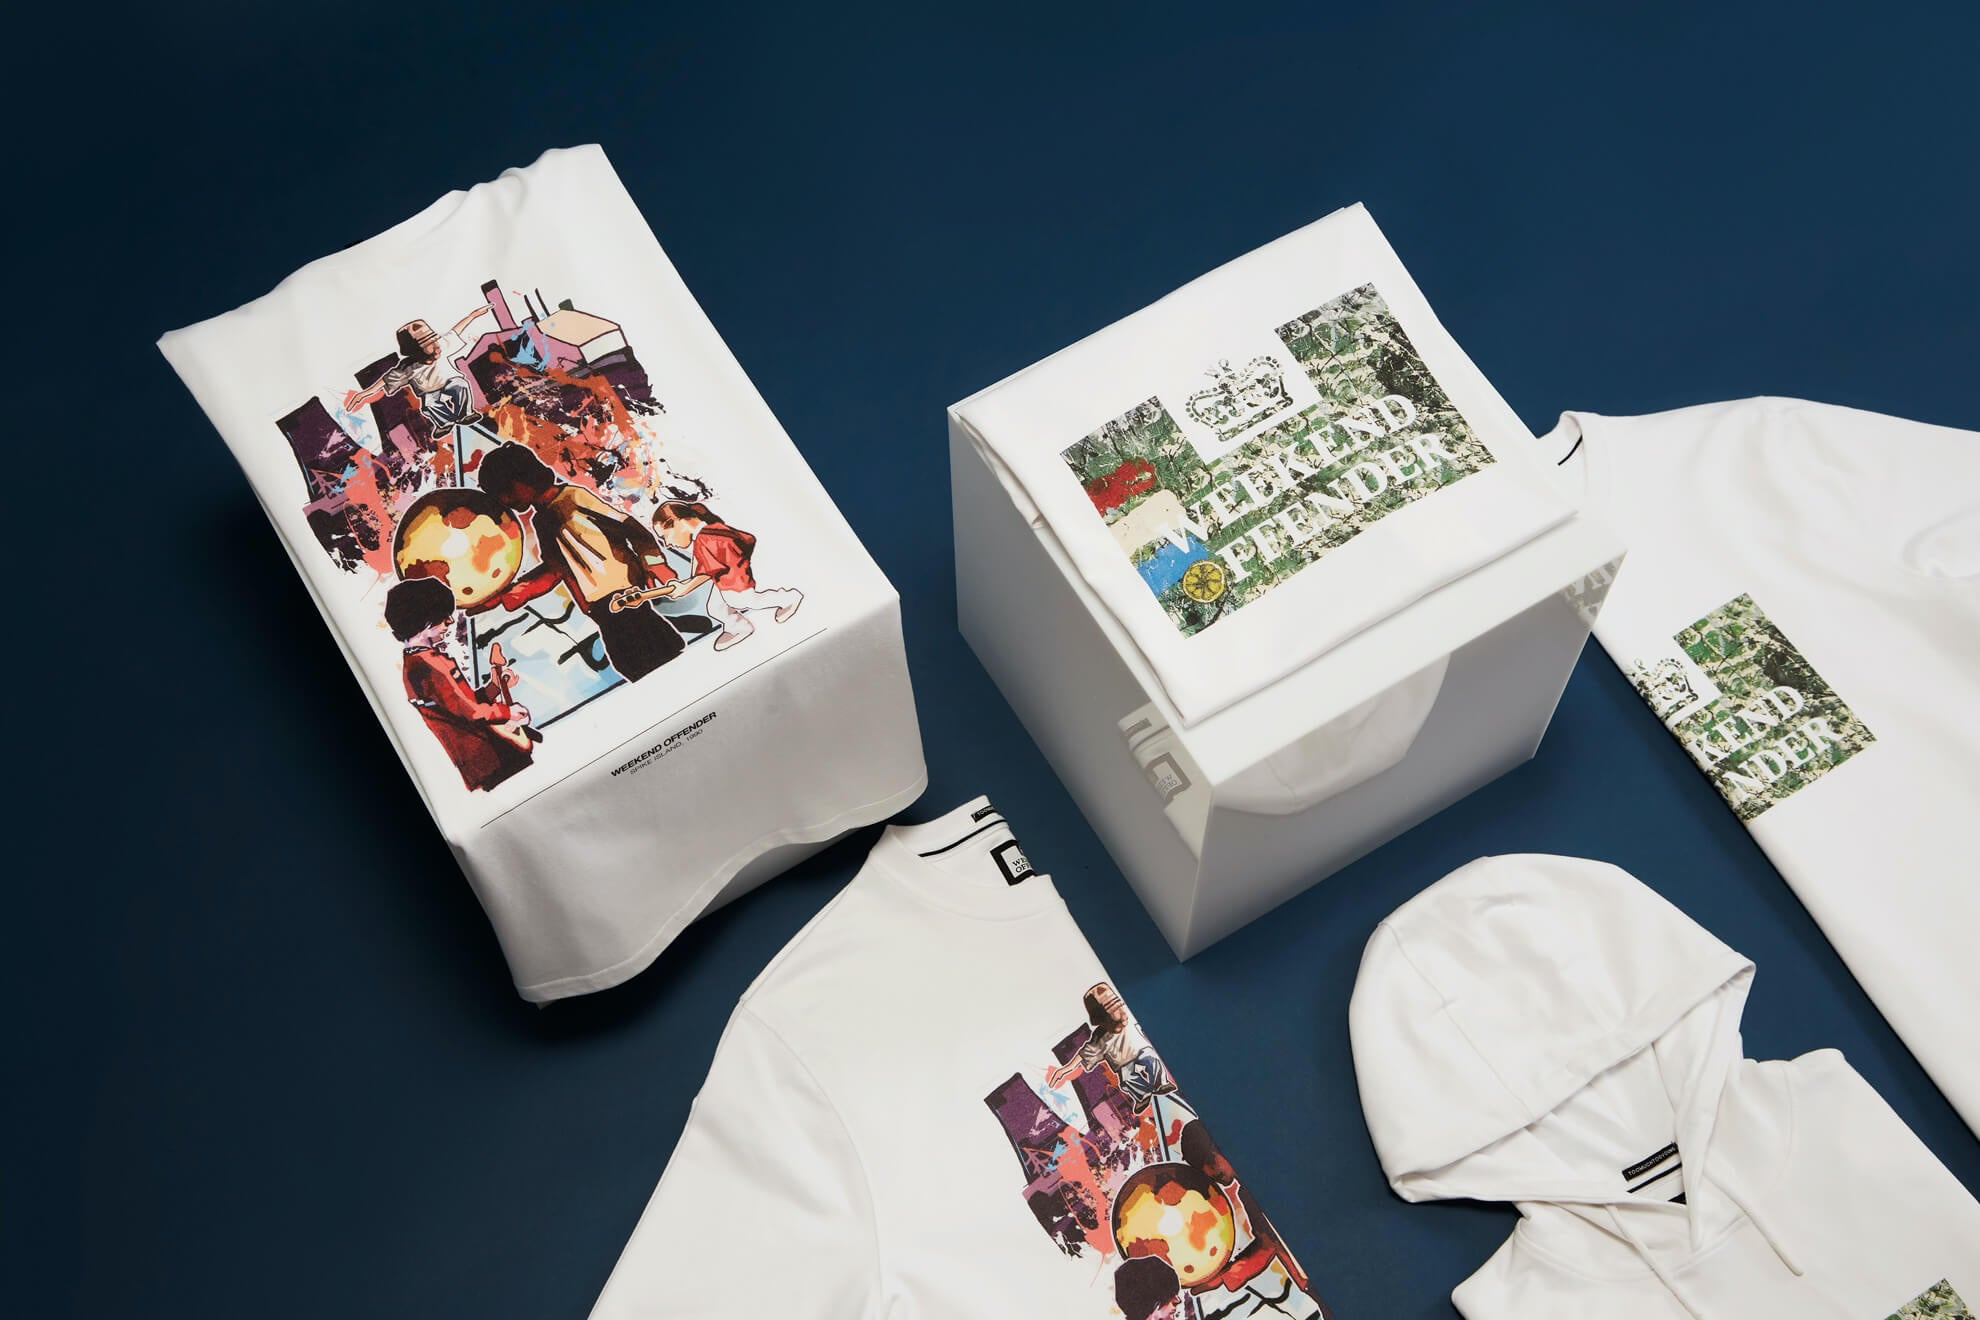 The Spike Island Collection